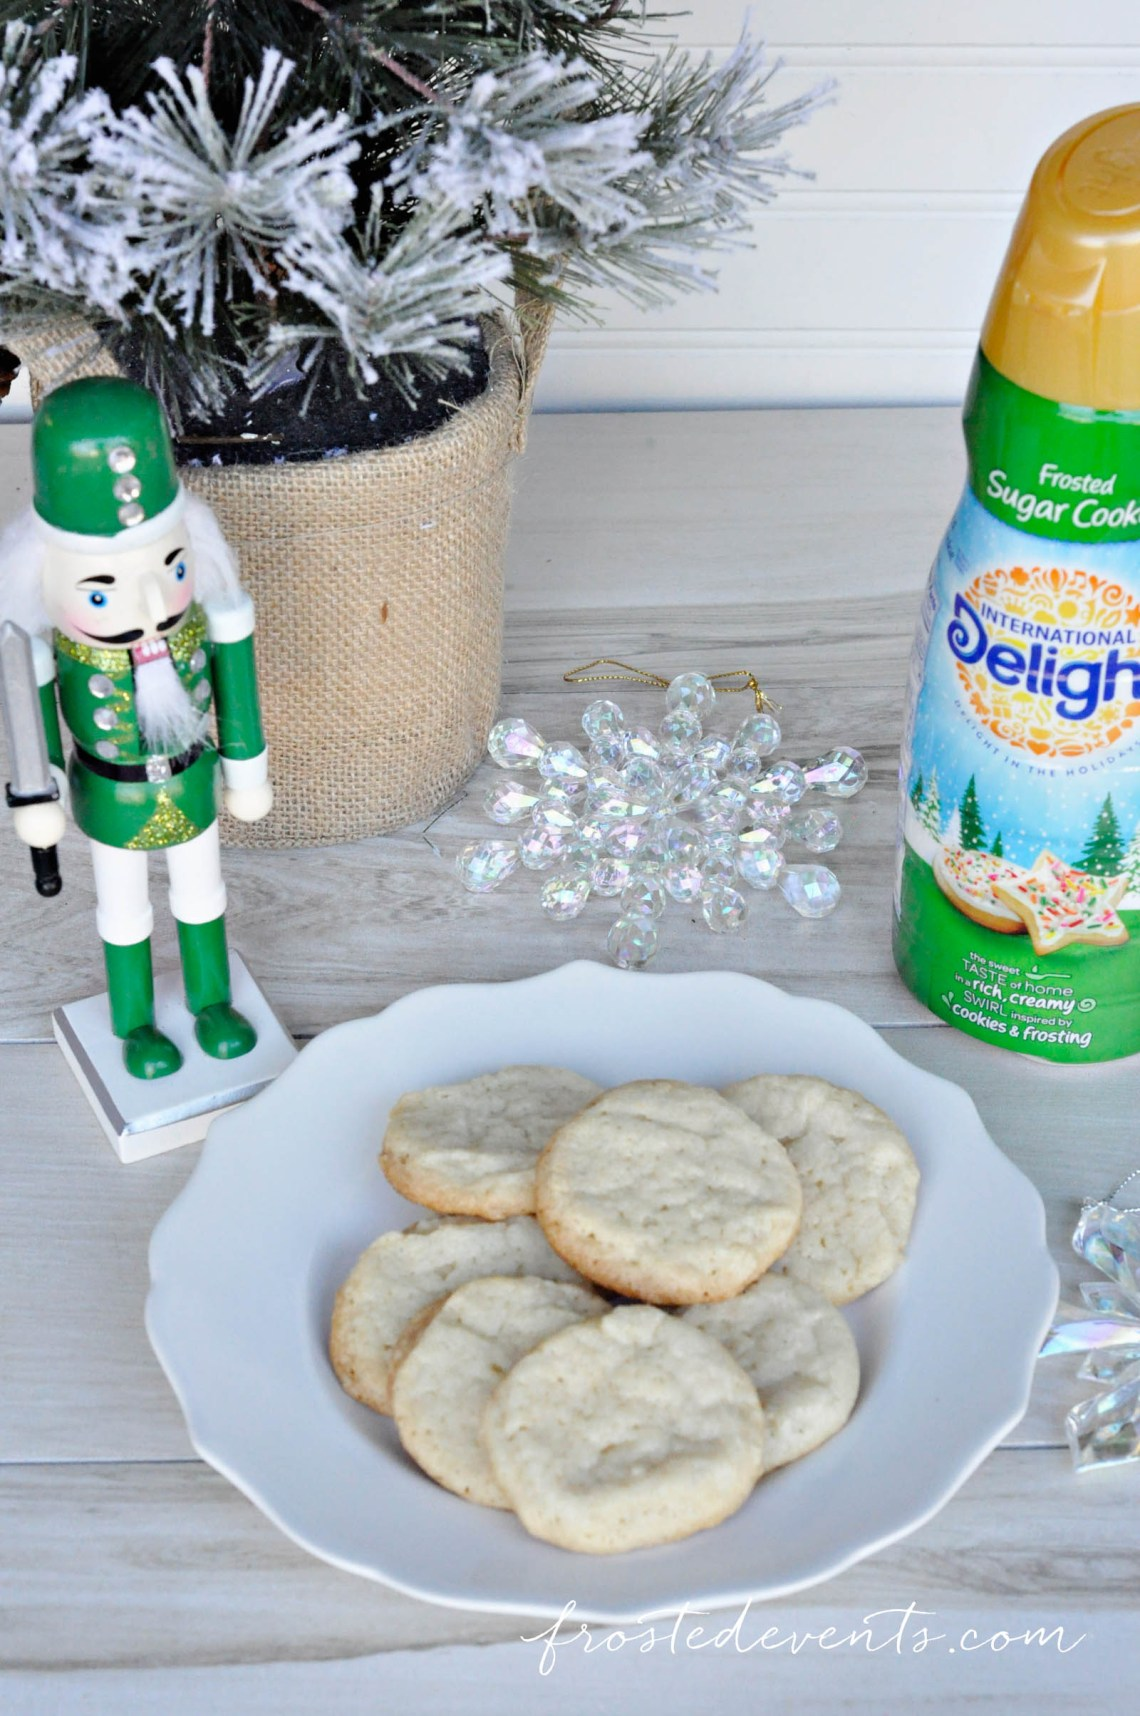 Holiday Season, But First Coffee with International Delight Creamer